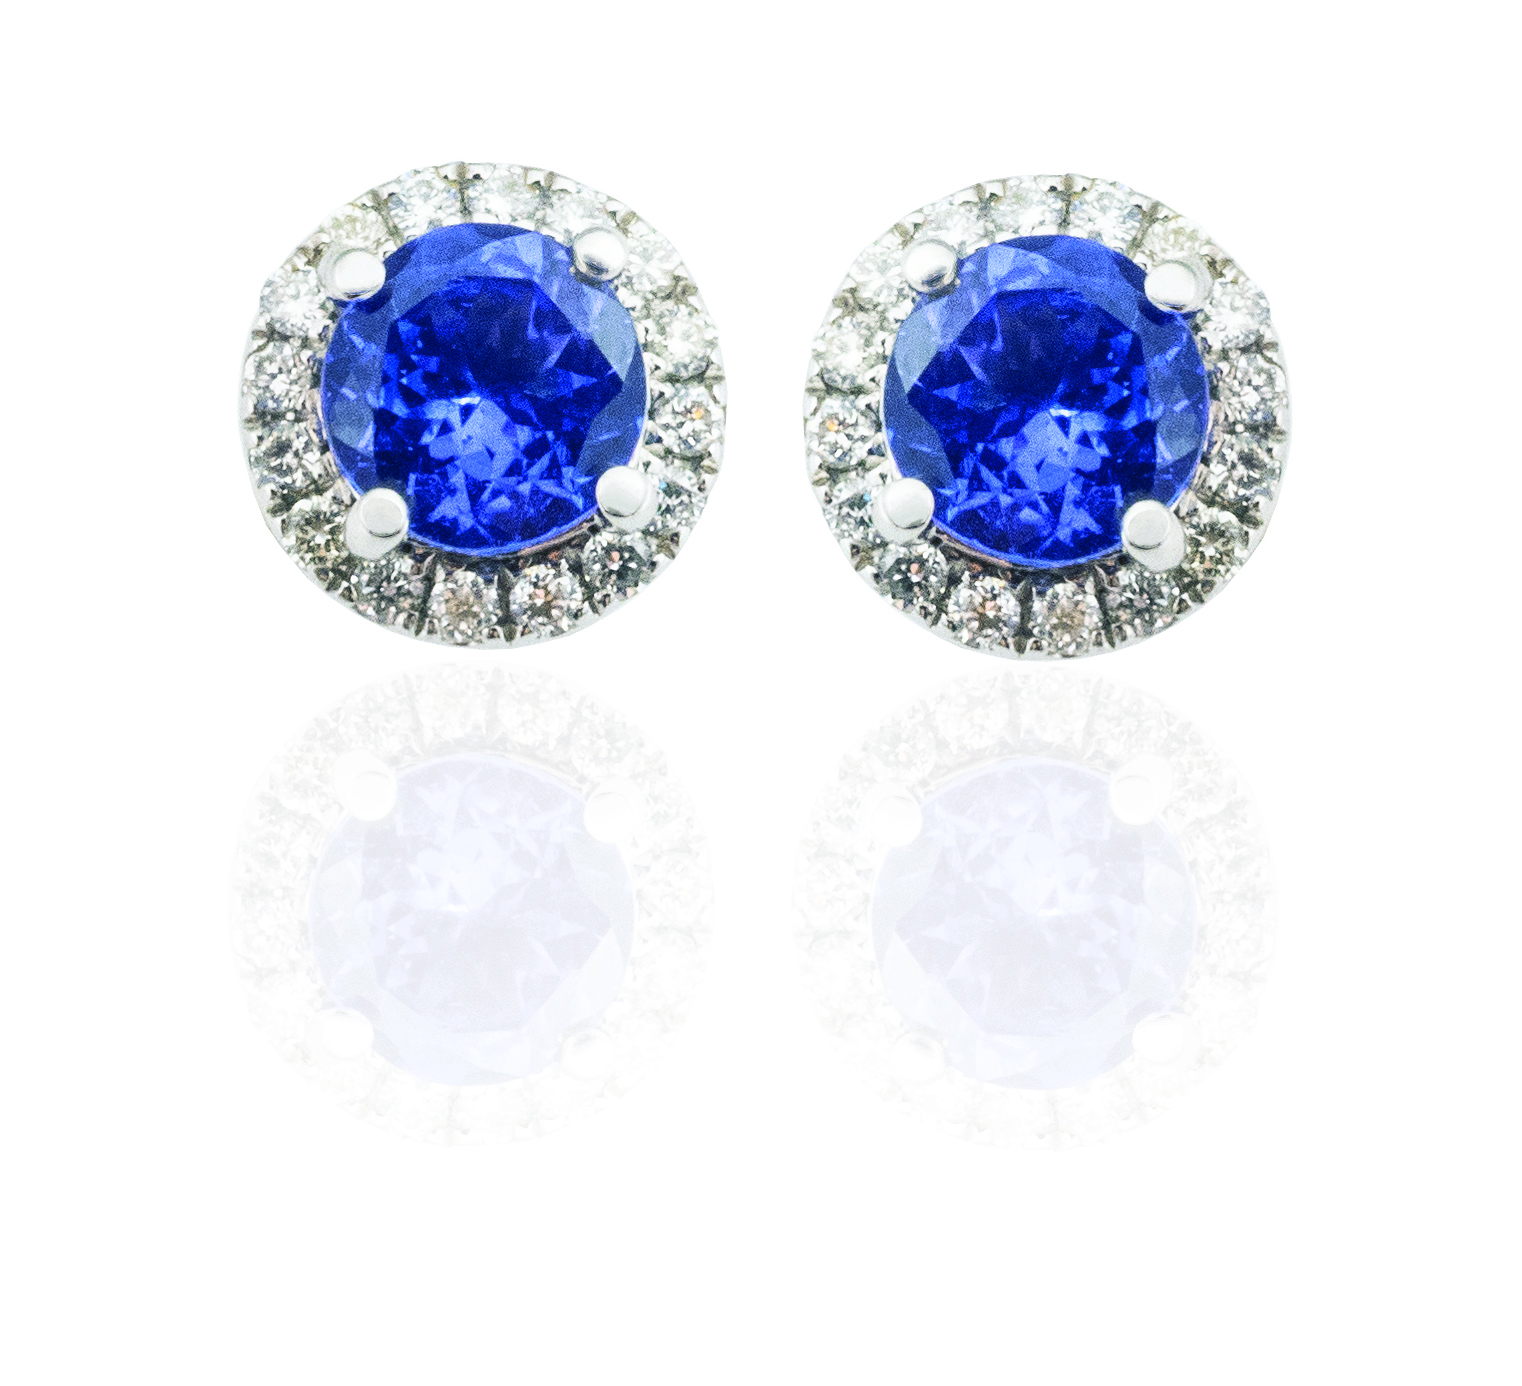 Tanzanite diamond studs! - SOLD